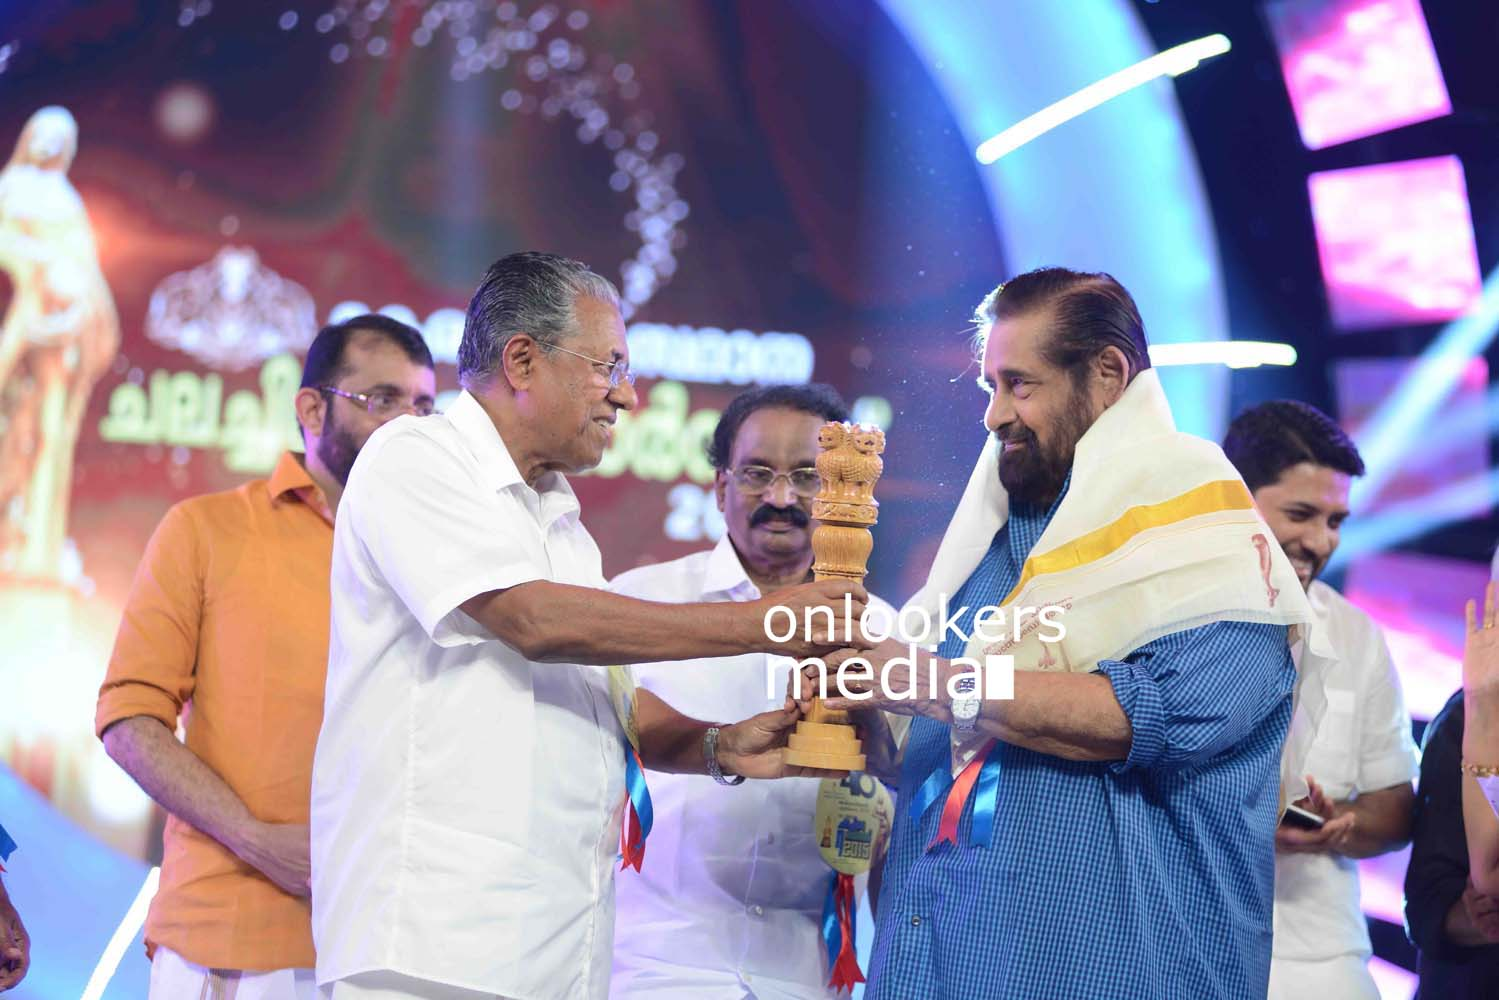 http://onlookersmedia.in/wp-content/uploads/2016/10/Kerala-State-Film-Awards-2015-stills-Photos-38.jpg